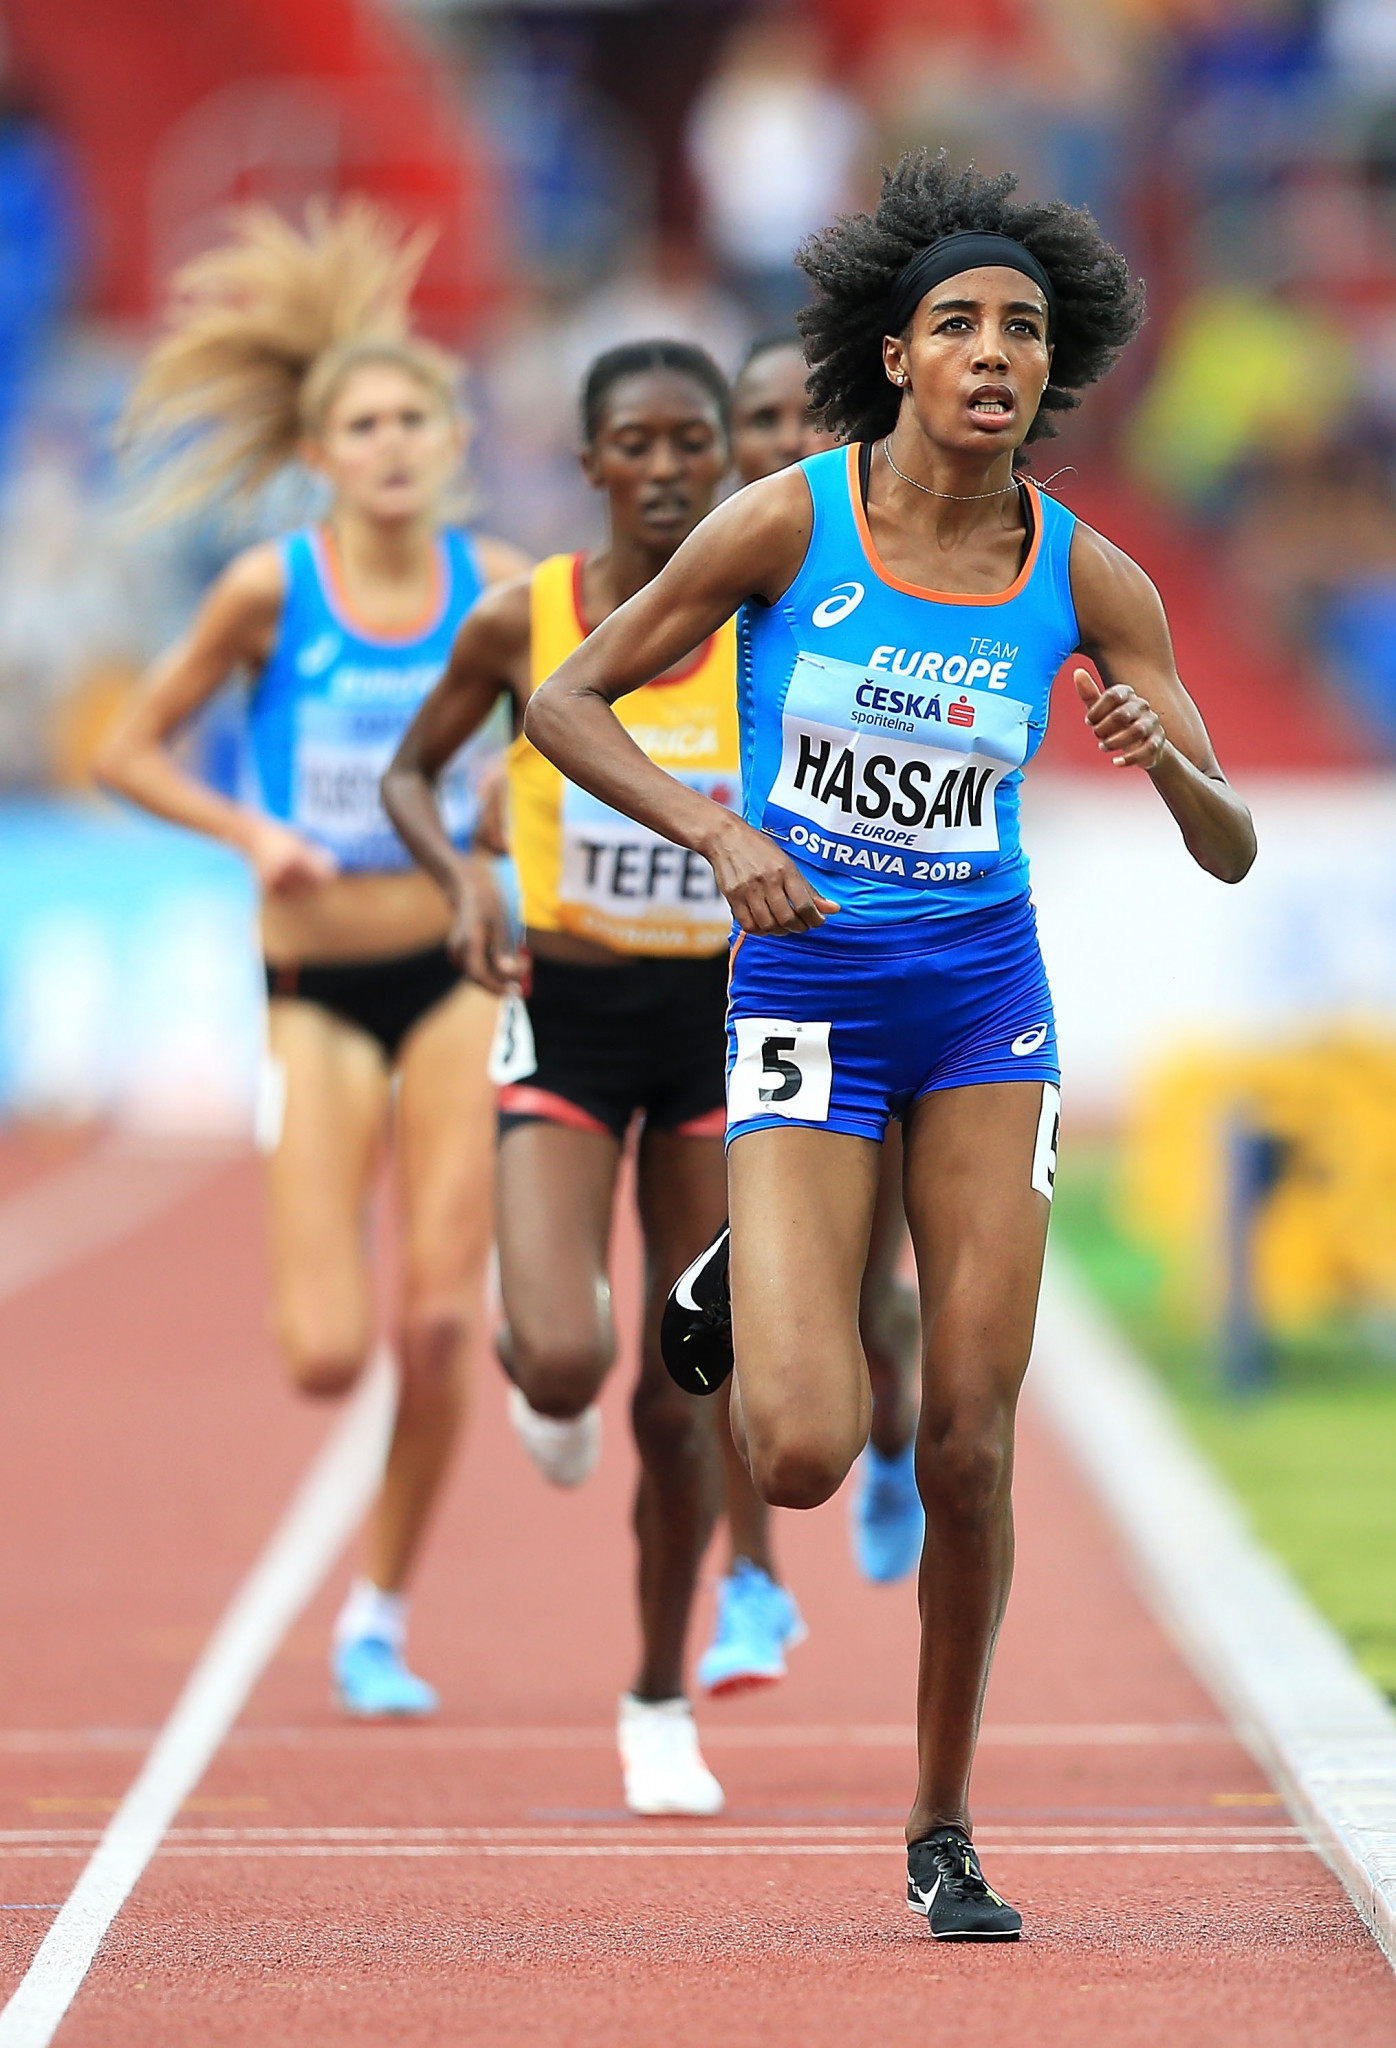 Sifan Hassan, racing for Team Europe, set a Championship record in the women's 3,000 metres at the Continental Cup in Ostrava ©Getty Images